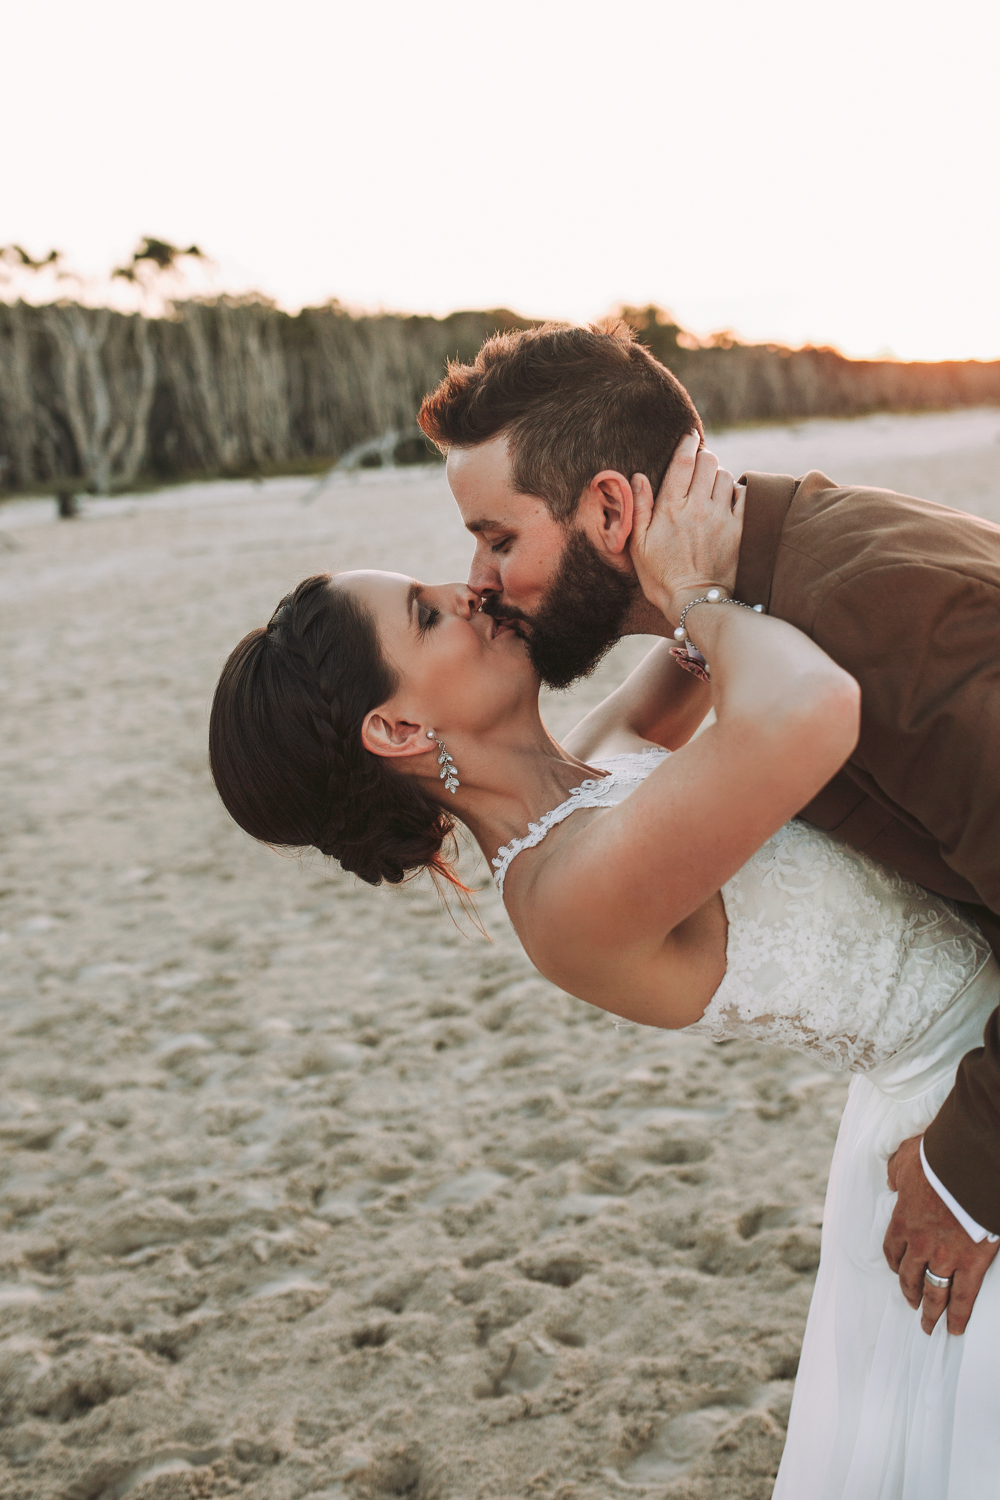 bride and groom kiss after their ceremony on the beach.